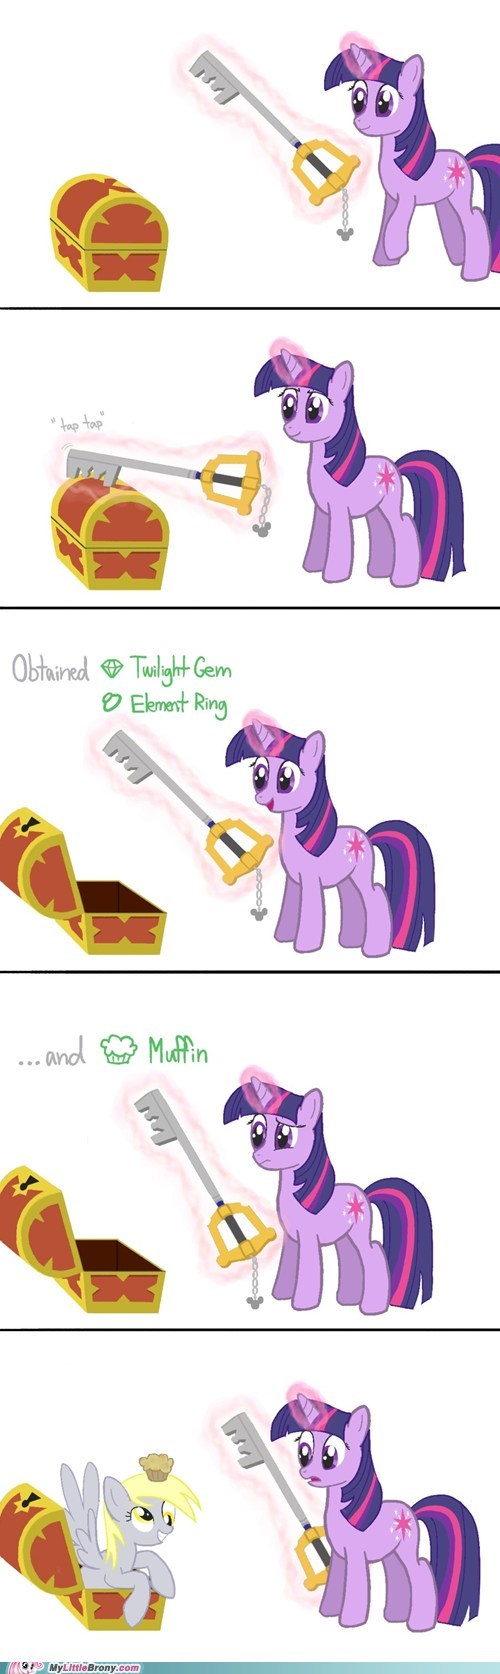 best of week,comics,crossover,derpy hooves,keyblade,kingdom hearts,muffins